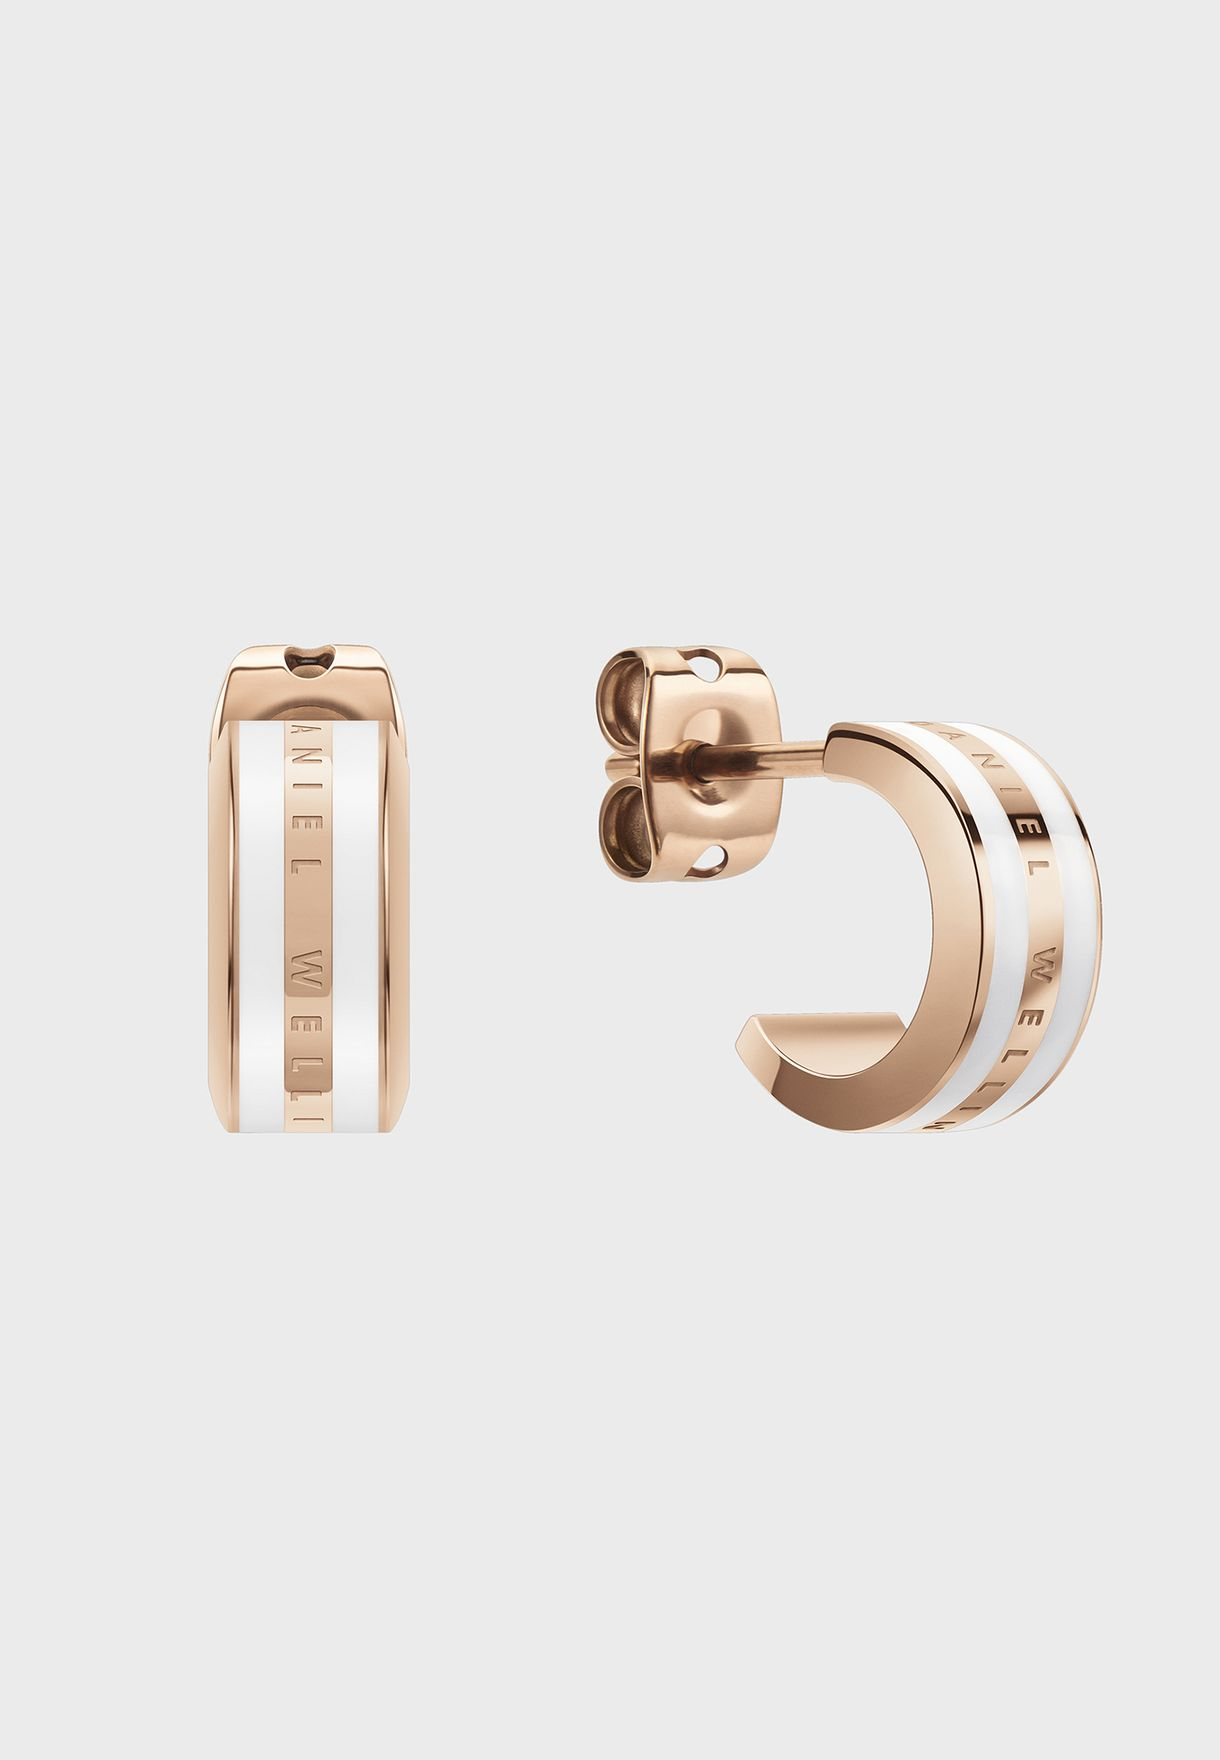 Emalie Cuff Earrings